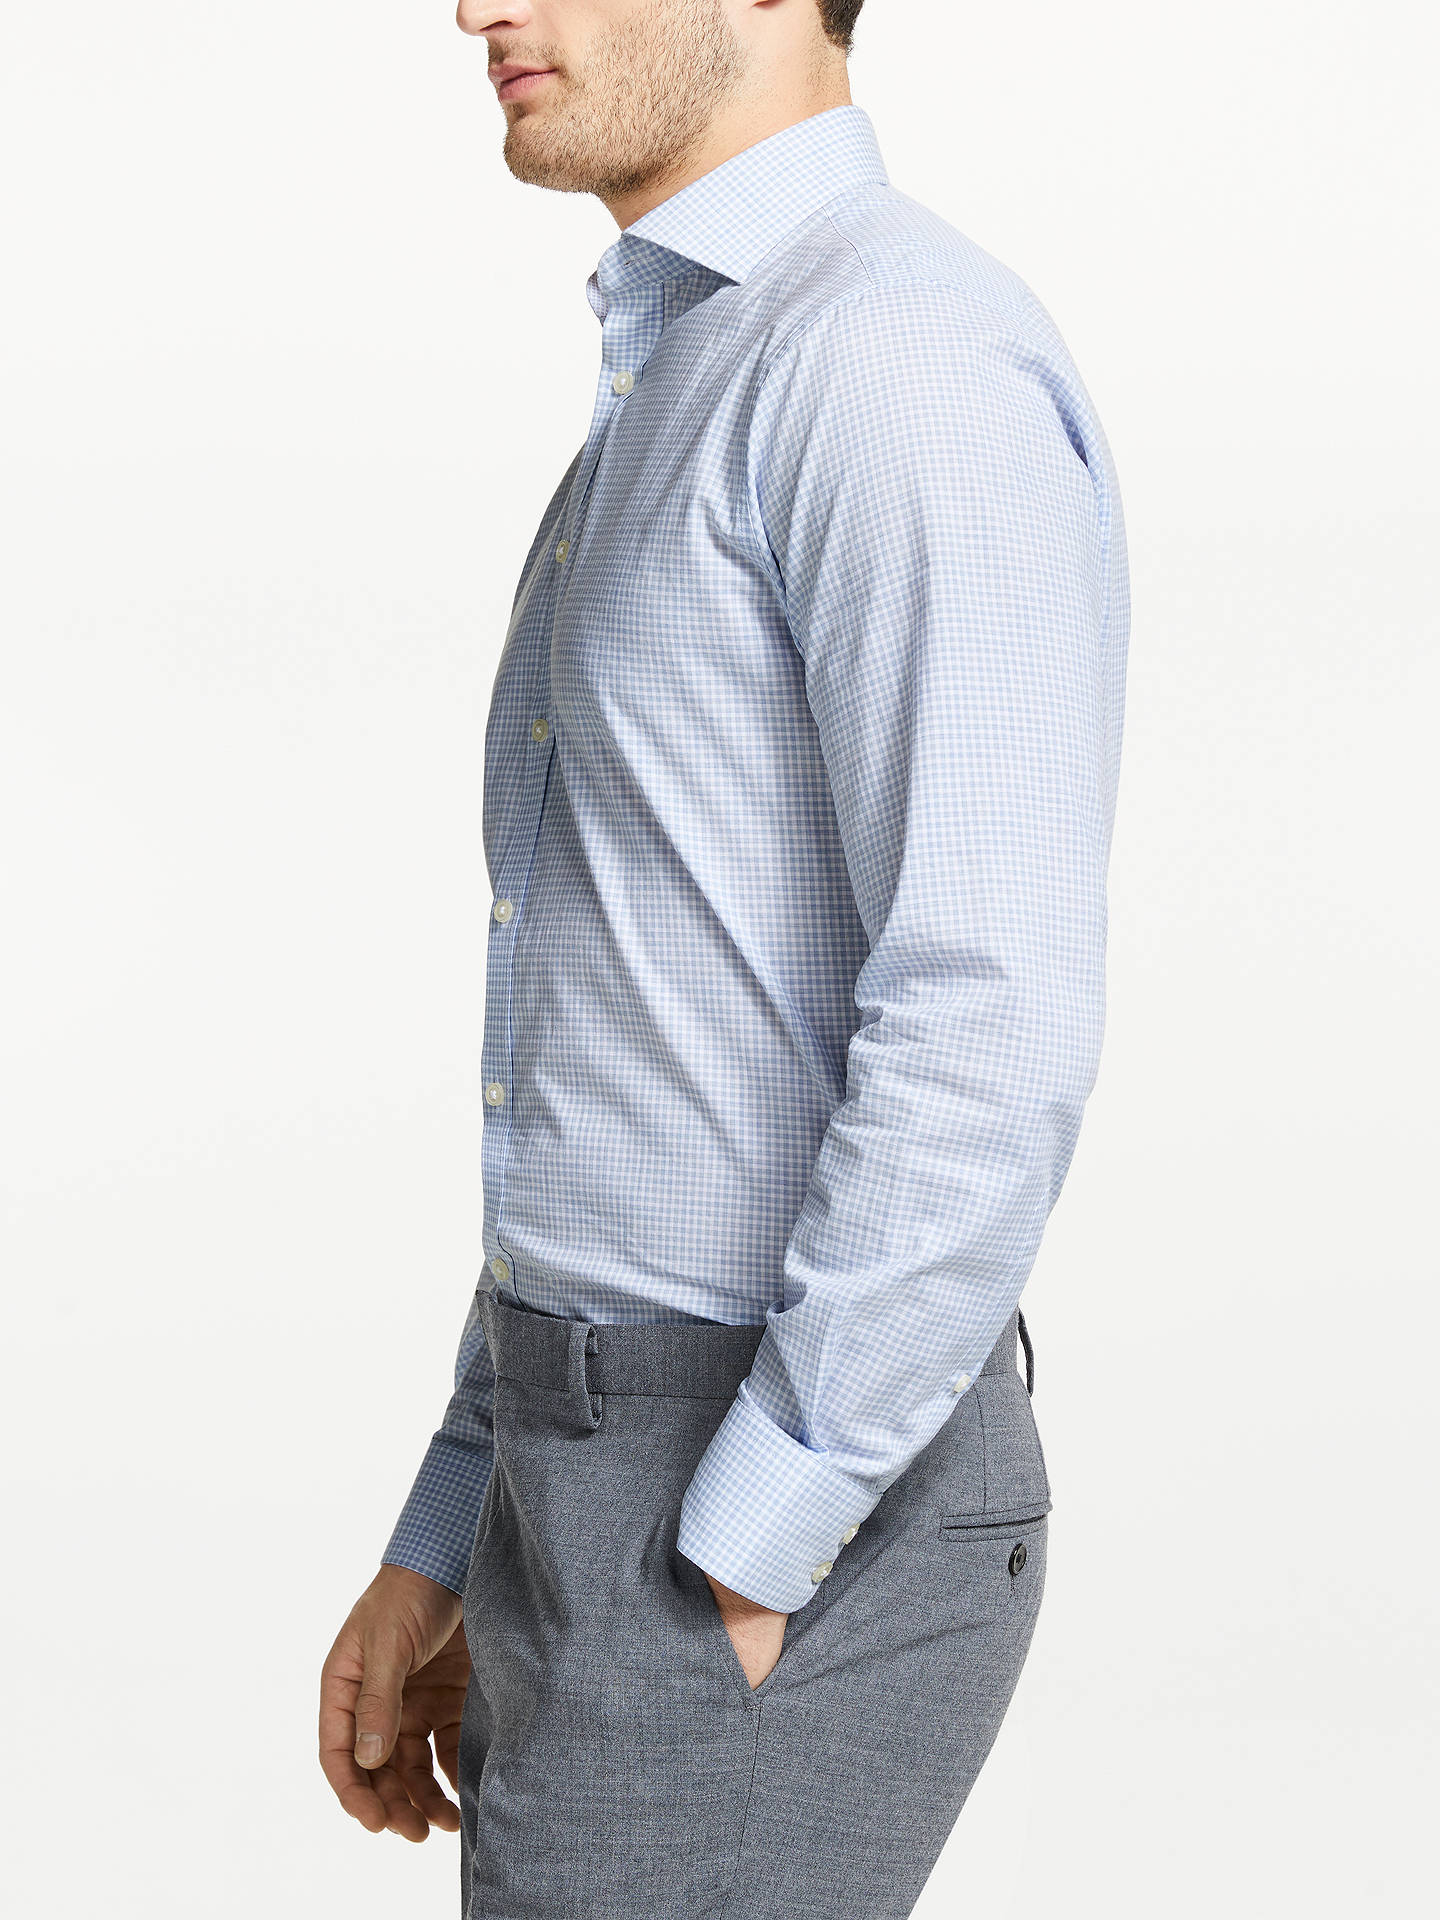 BuyJohn Lewis & Partners Tailored Abstract Gingham Shirt, Blue, 15.5 Online at johnlewis.com